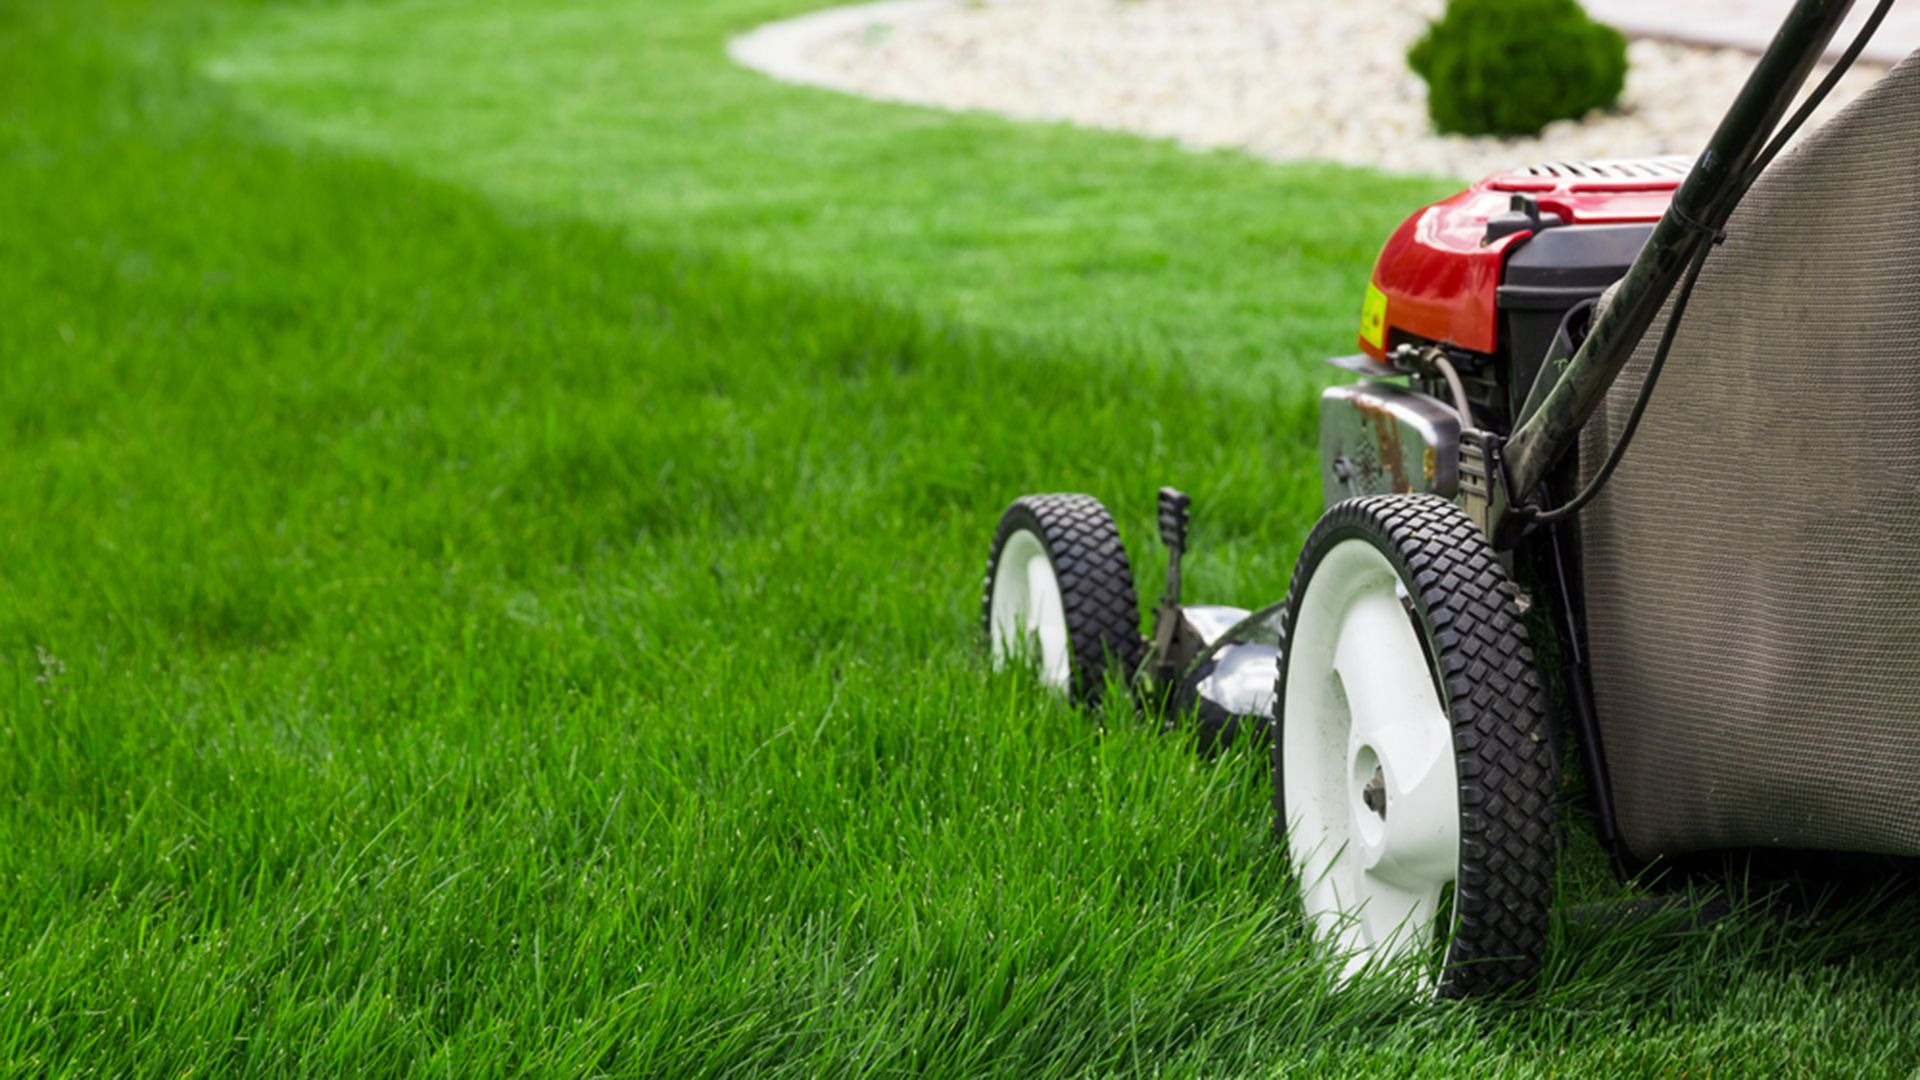 4 Things You Can Do To Care For Your Yard